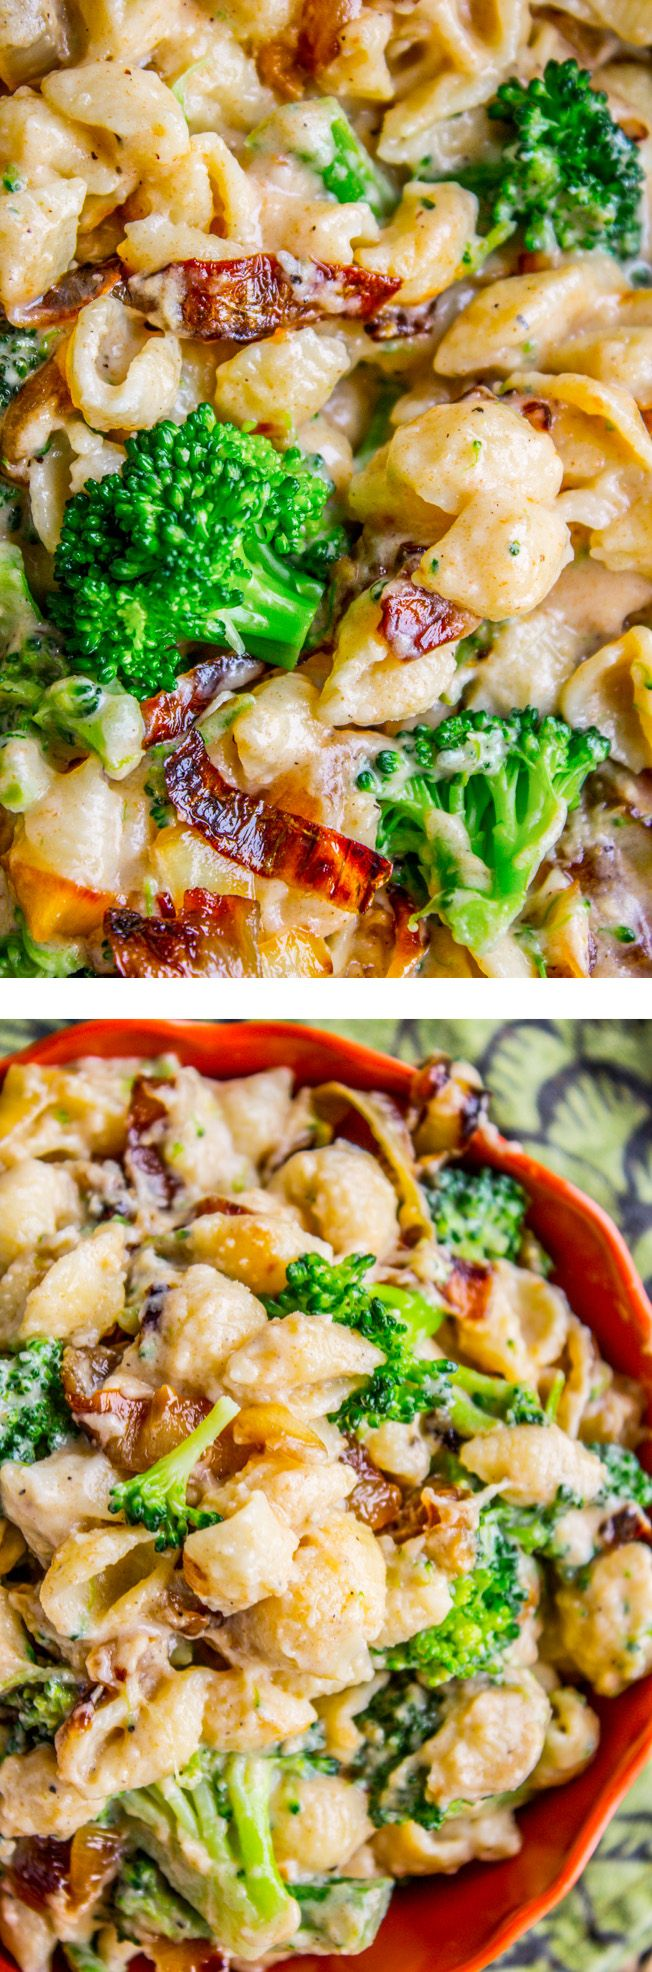 Caramelized onions add tons of flavor to this stove top mac and cheese! The sweet onions paired with the tender broccoli and sharp white cheddar is amazing! Recipe from The Food Charlatan.